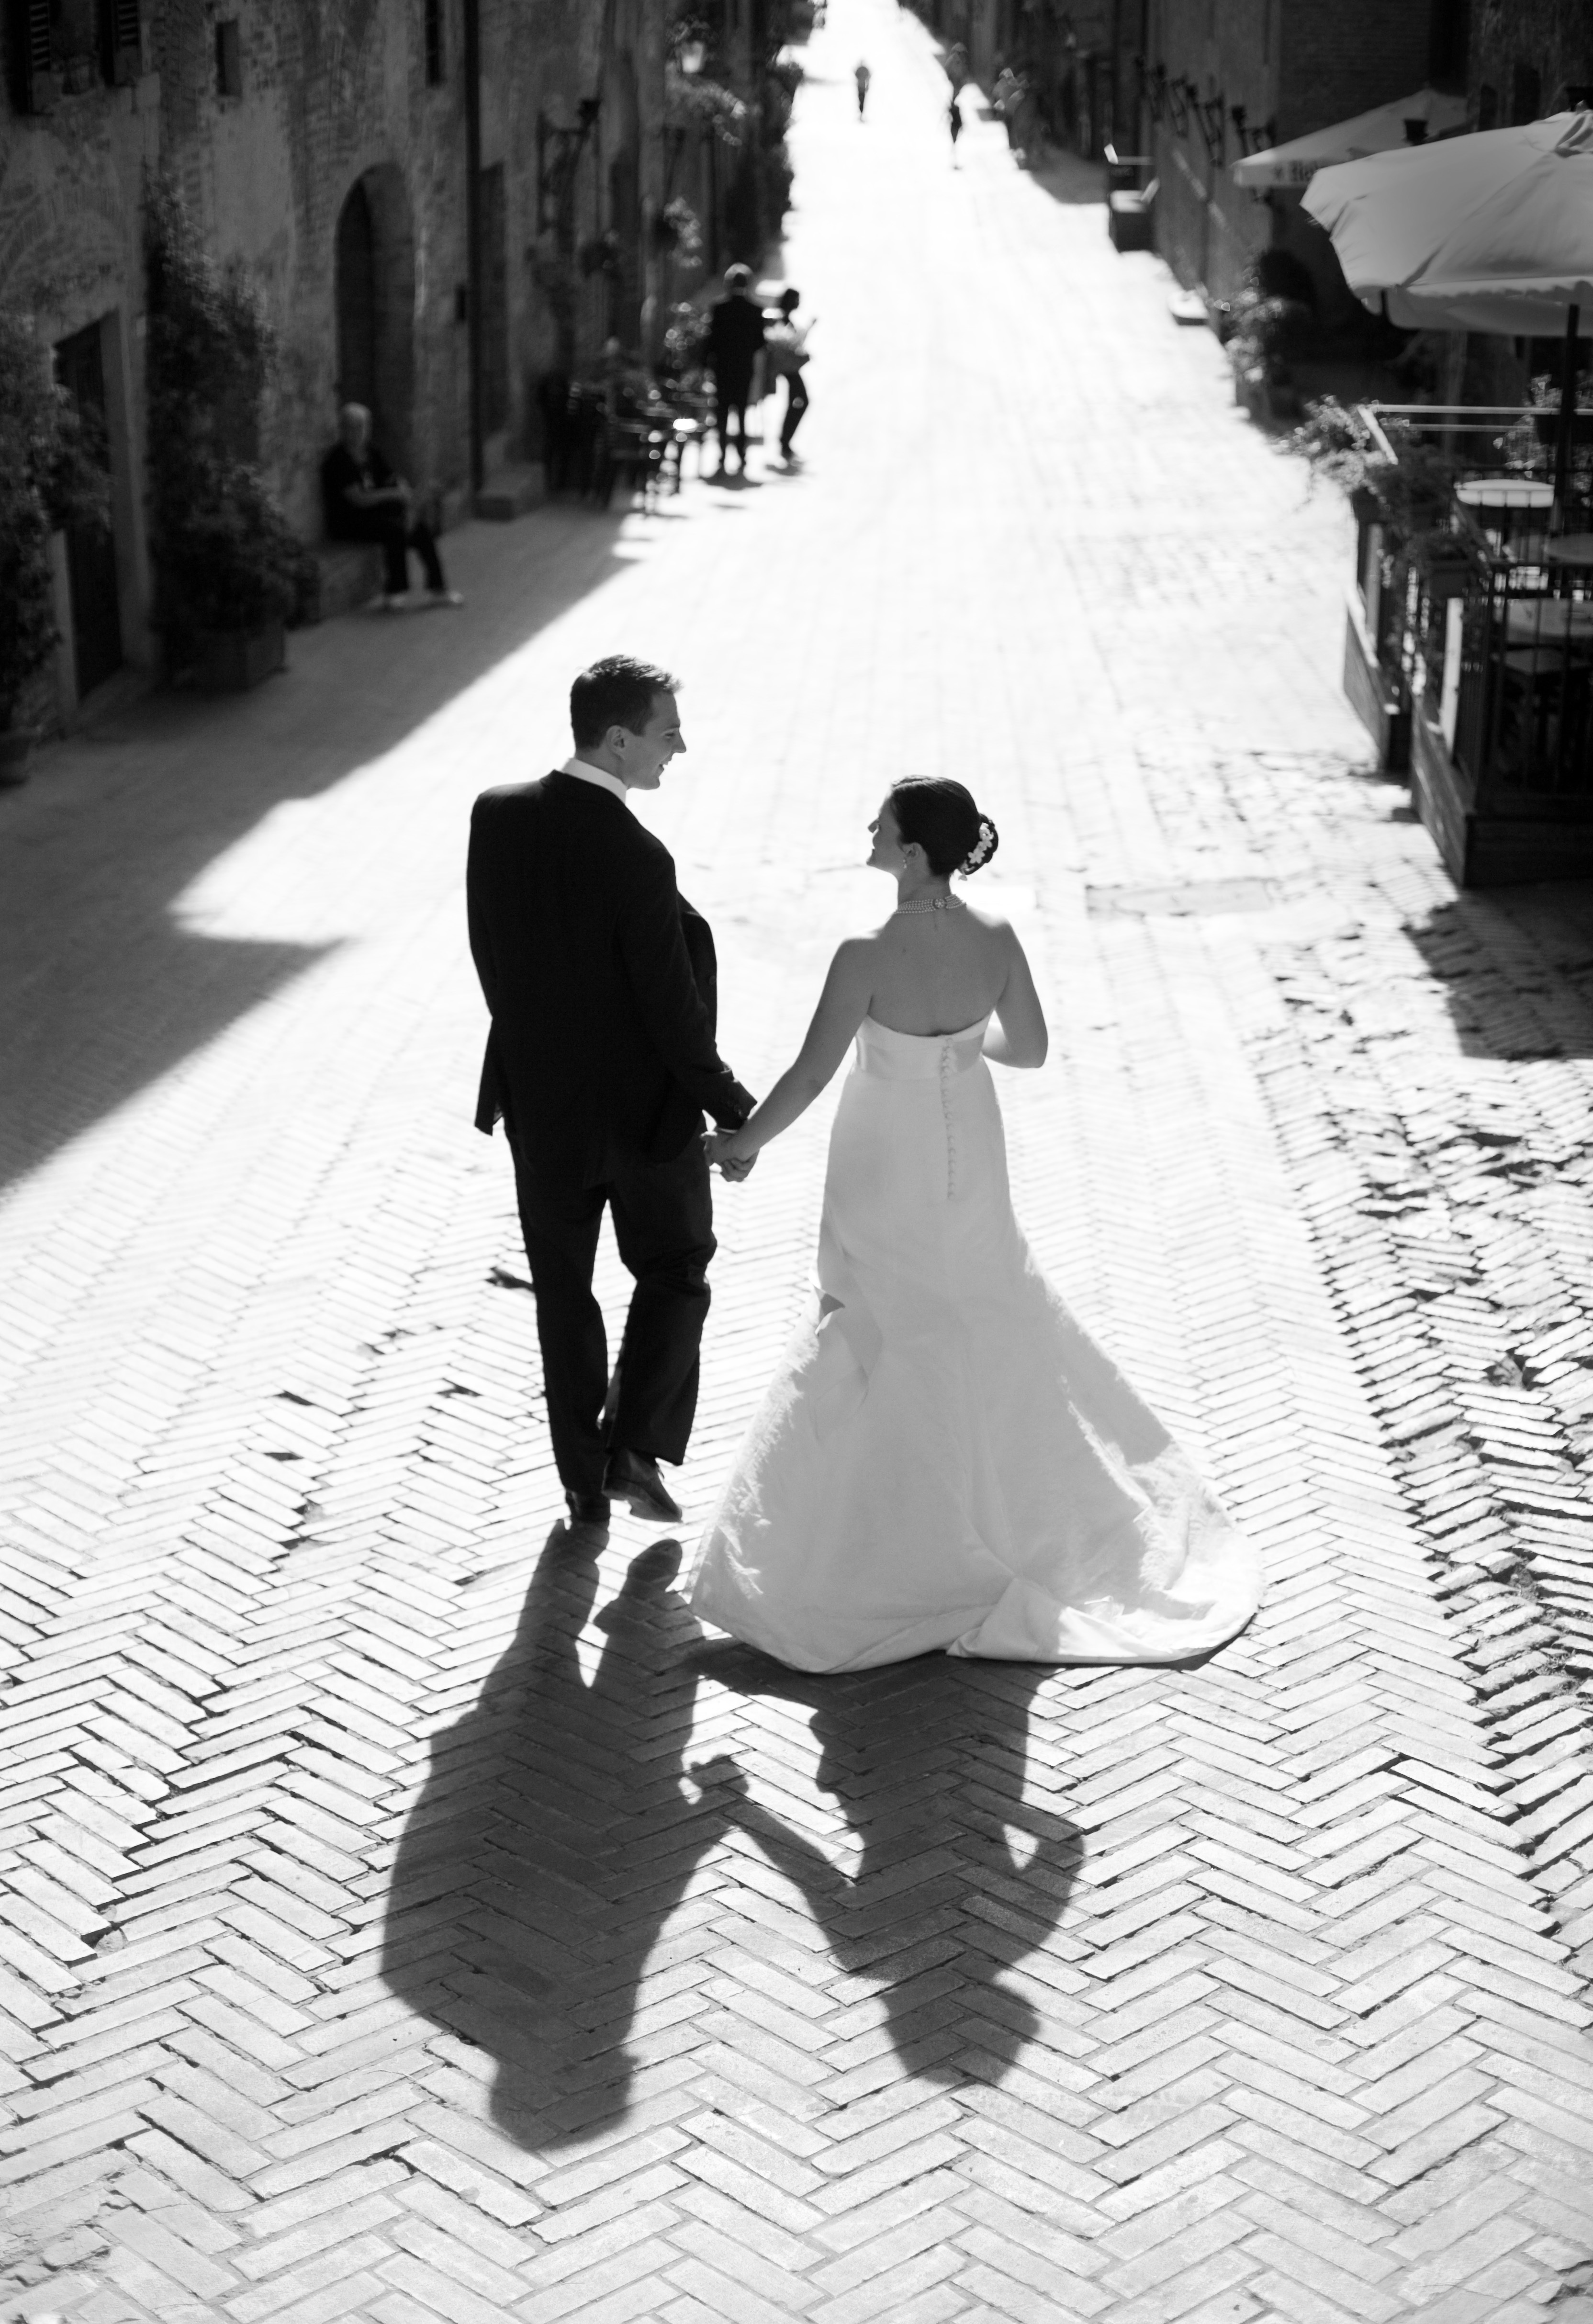 Veils, Photography, Destinations, Fashion, white, black, Europe, Bride, Groom, Veil, And, Destination, Couple, italy, York, New, Bw, Charleston, Corbin gurkin photography, Tuscany, Shadow, Corbin, Gurkin